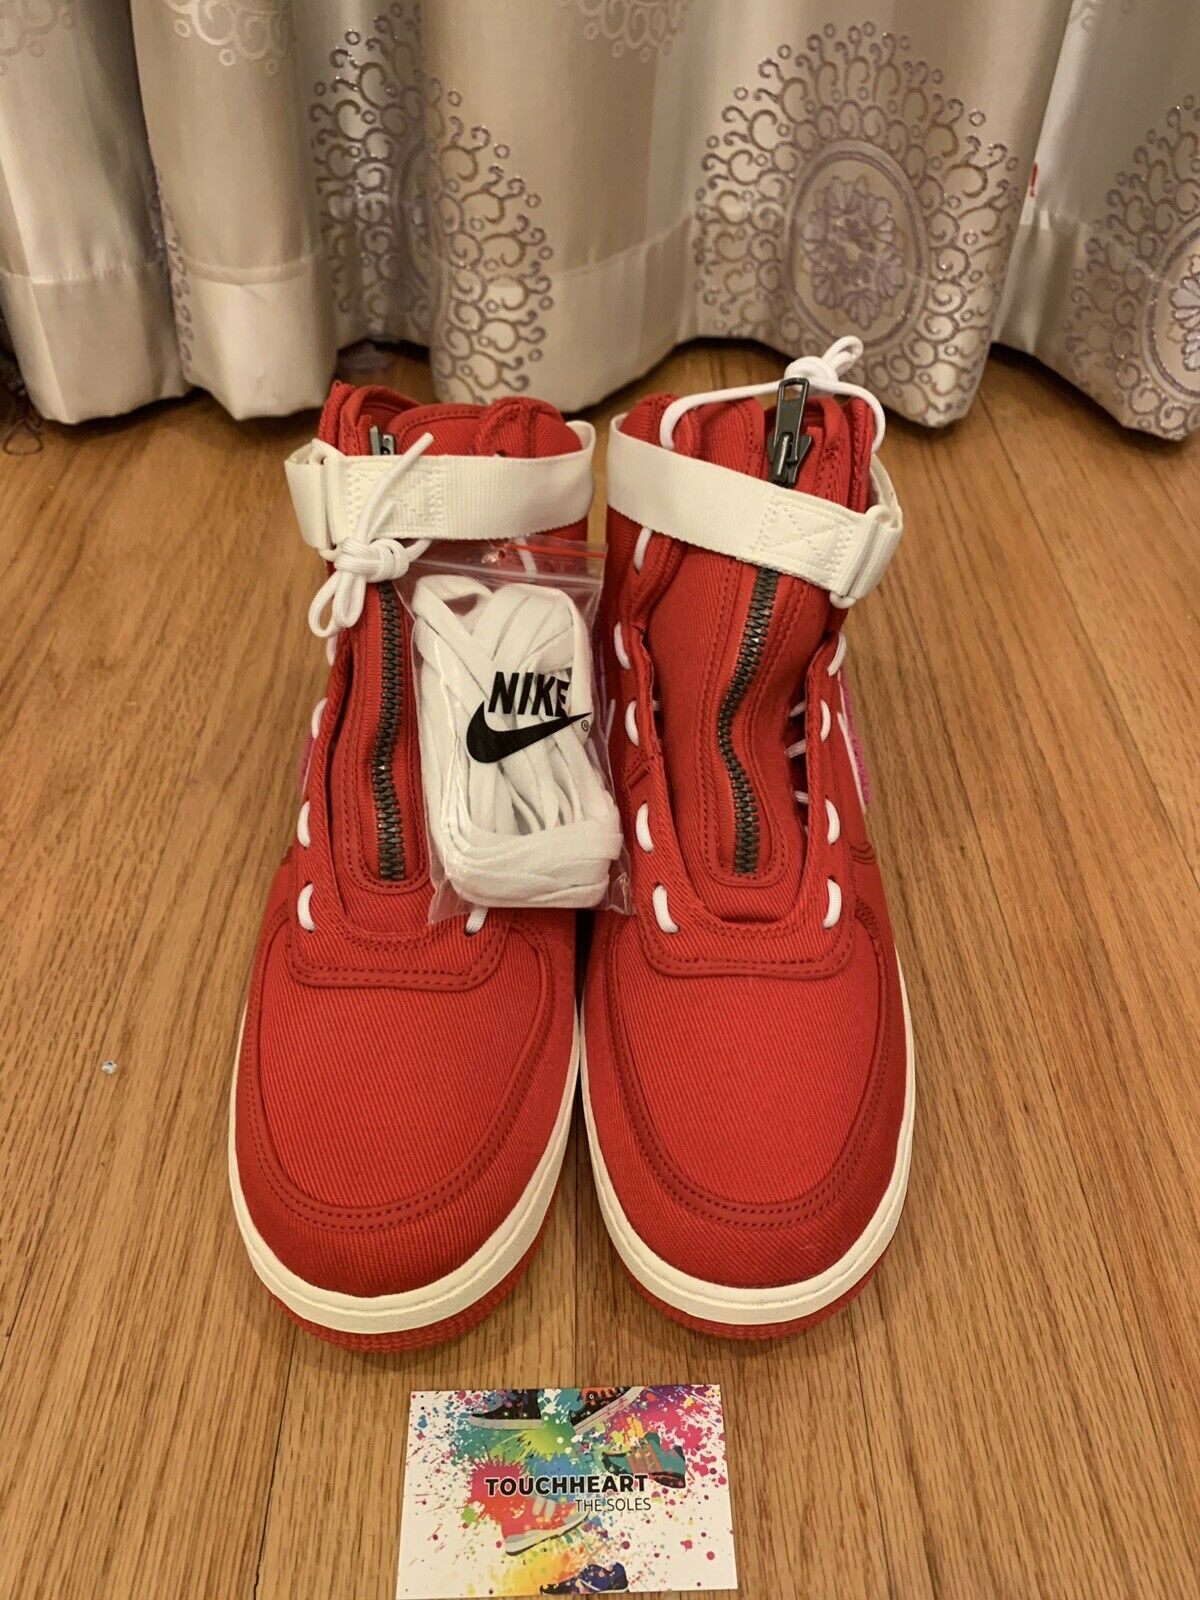 39f6ef9ea022 Nike Air Force 1 High Emotional Emotional Emotional Unavailable Heart Red  Size 12 7f32a0